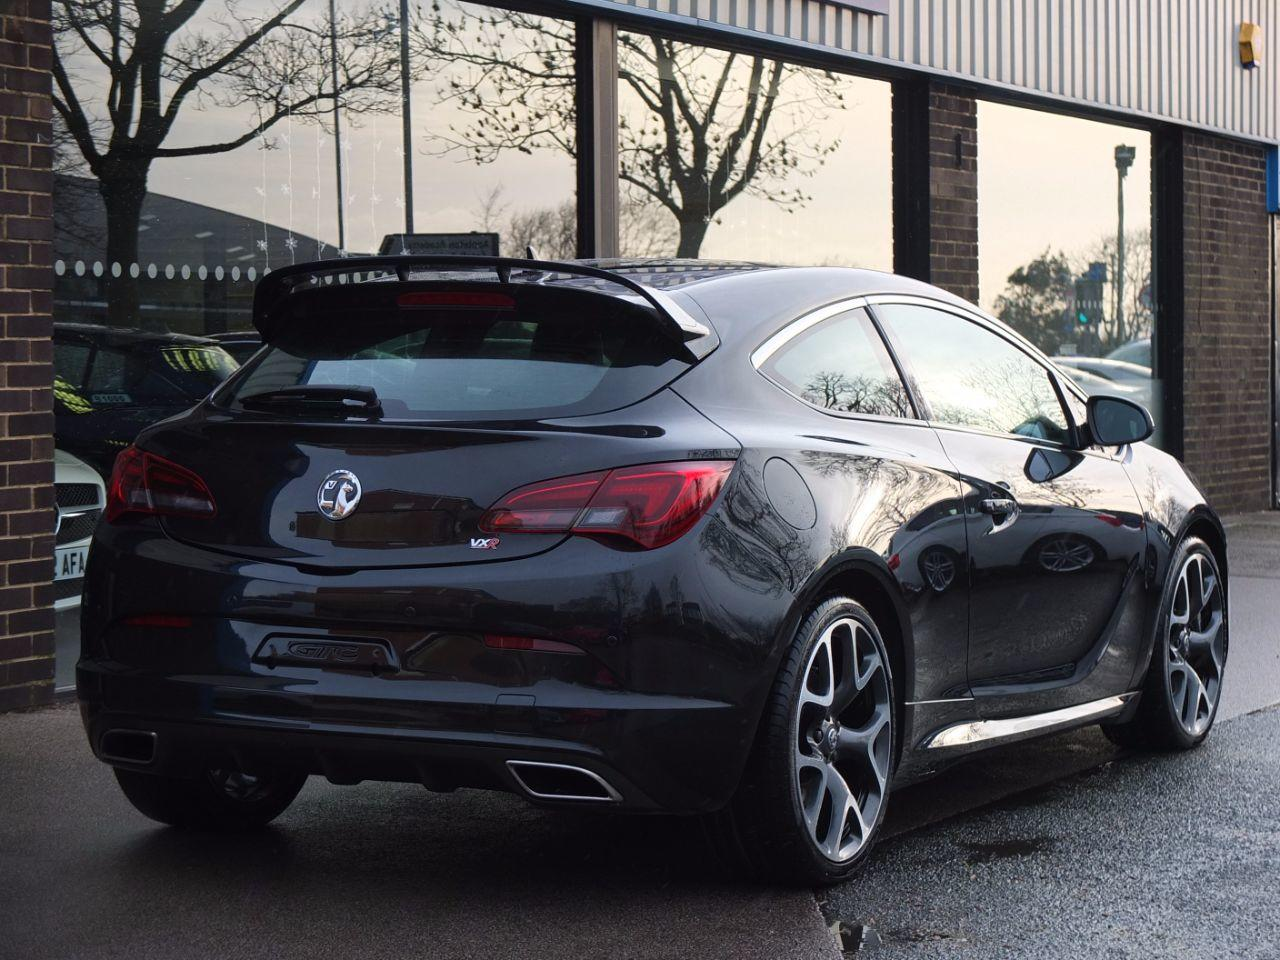 Vauxhall Astra GTC 2.0T 16V VXR 280ps Hatchback Petrol Carbon Flash Metallic